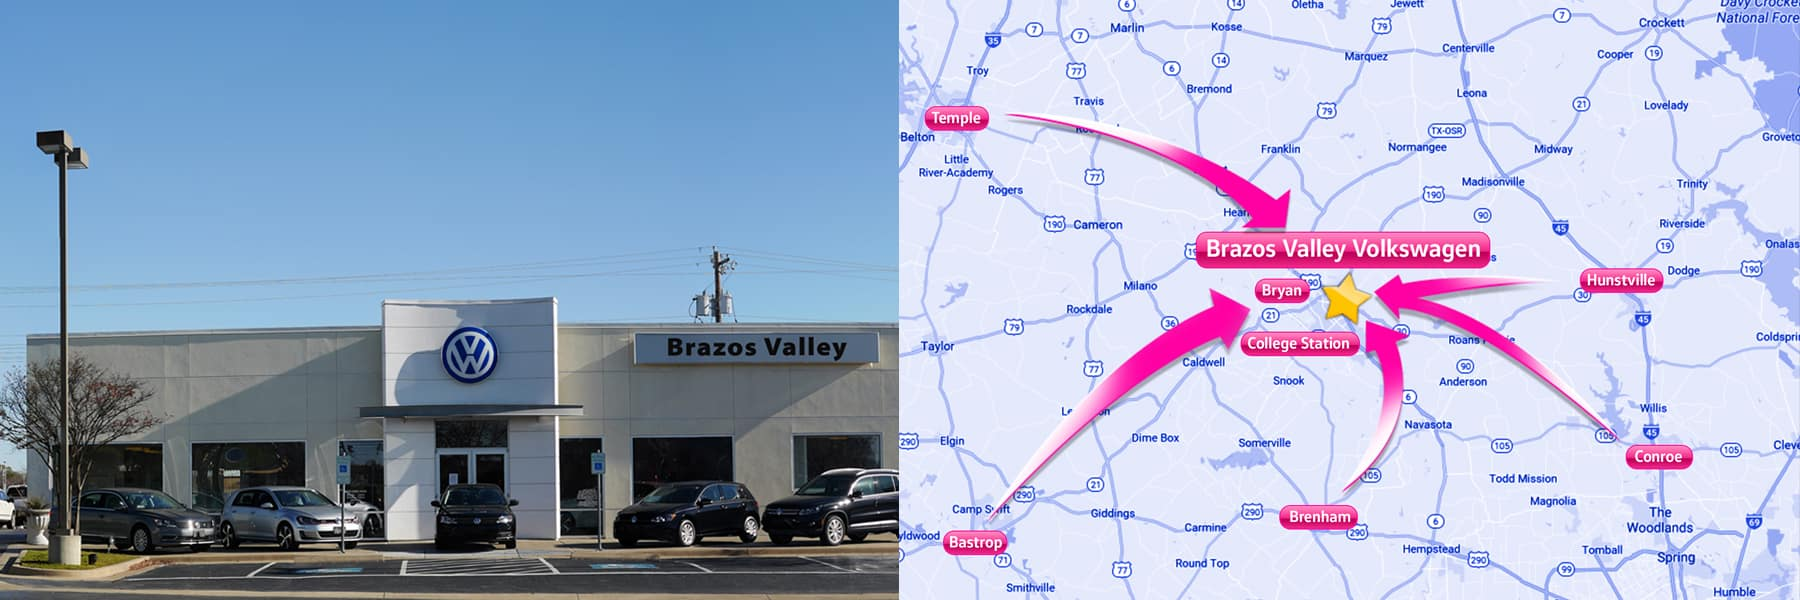 Brazos Valley Volkswagen Map